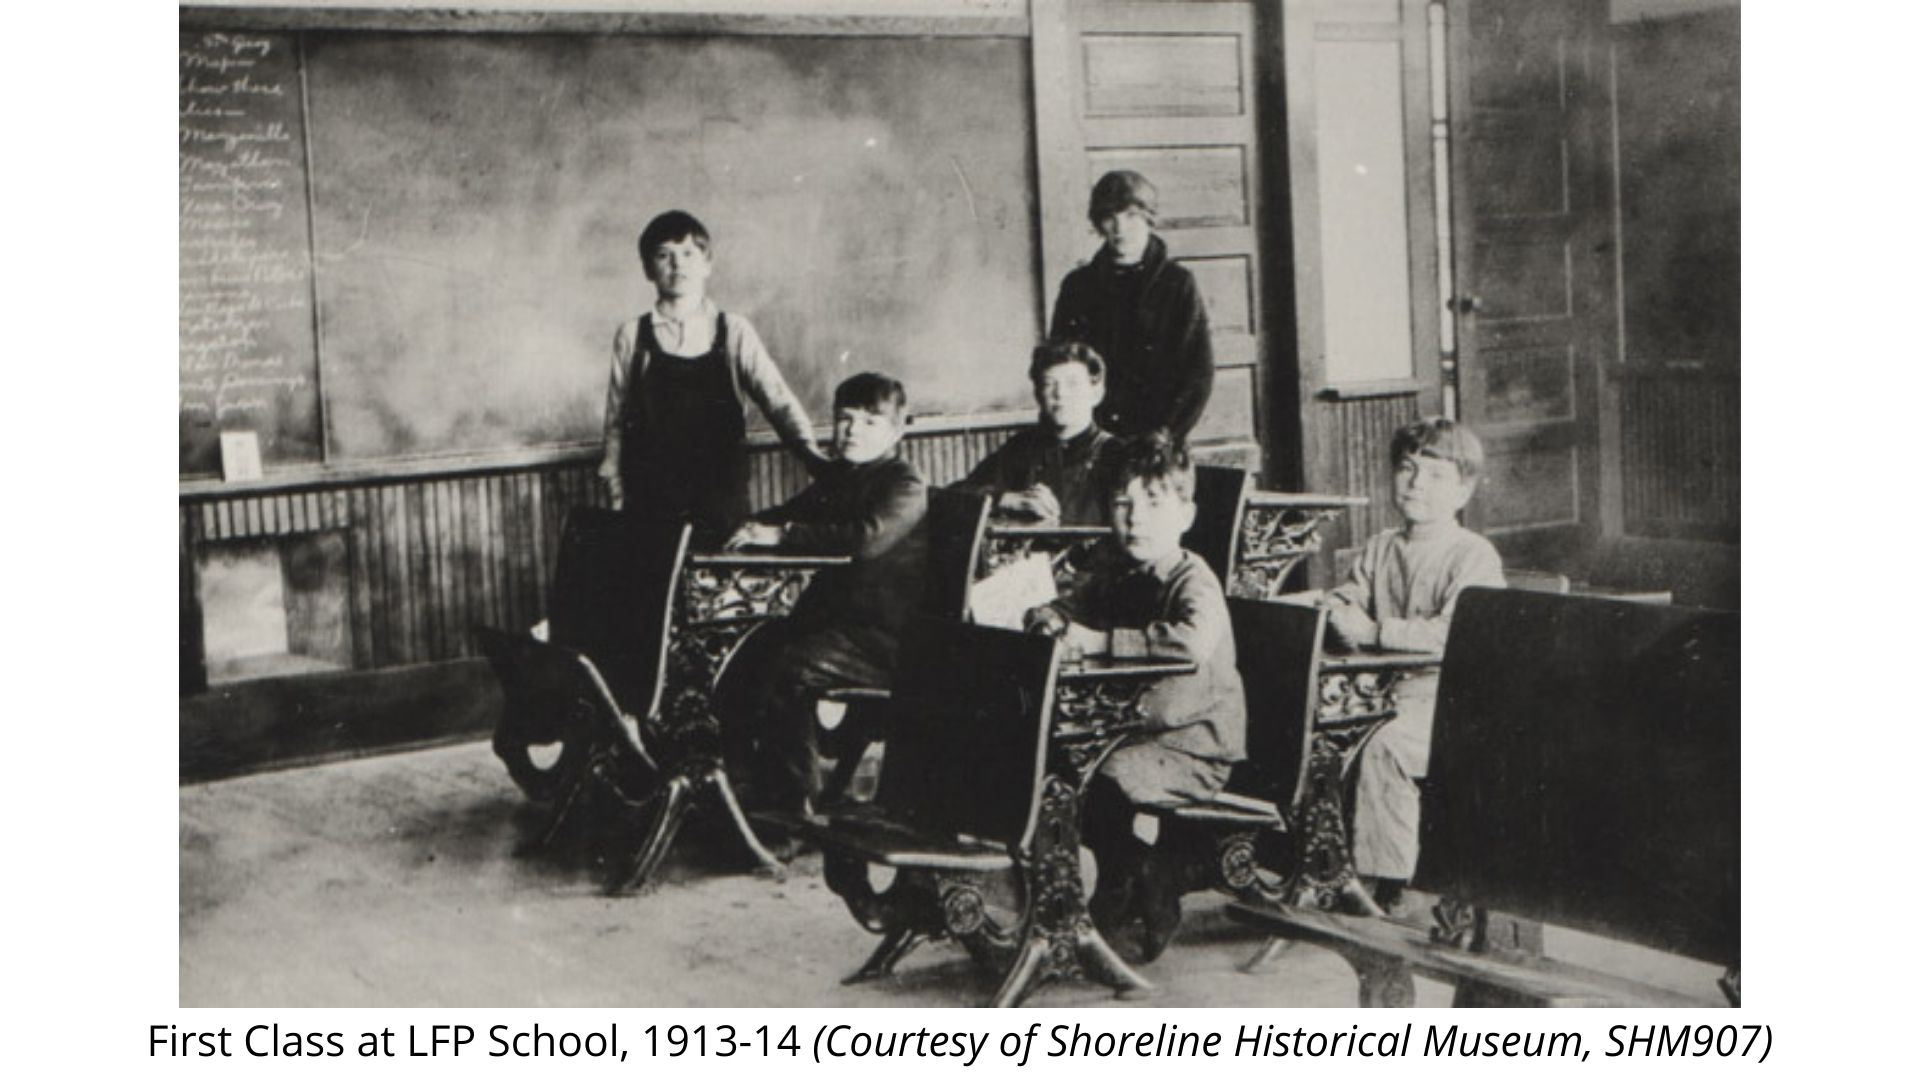 First Class at LFP School 1913-14 SHM907